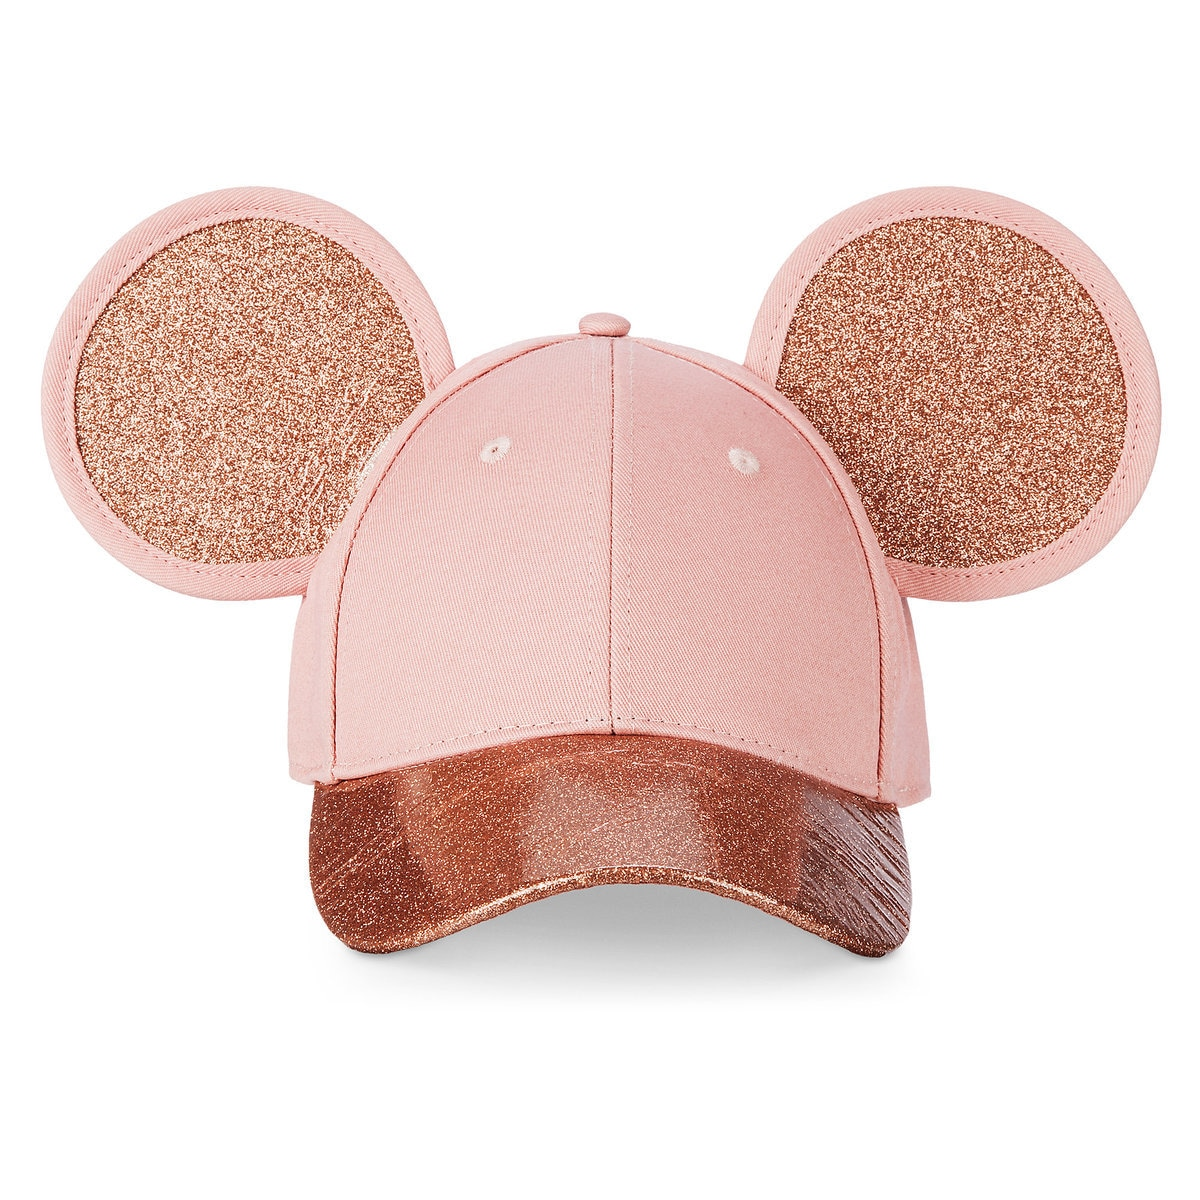 ff38009727786 Product Image of Mickey Mouse Rose Gold Ears Hat for Adults by Cakeworthy    1